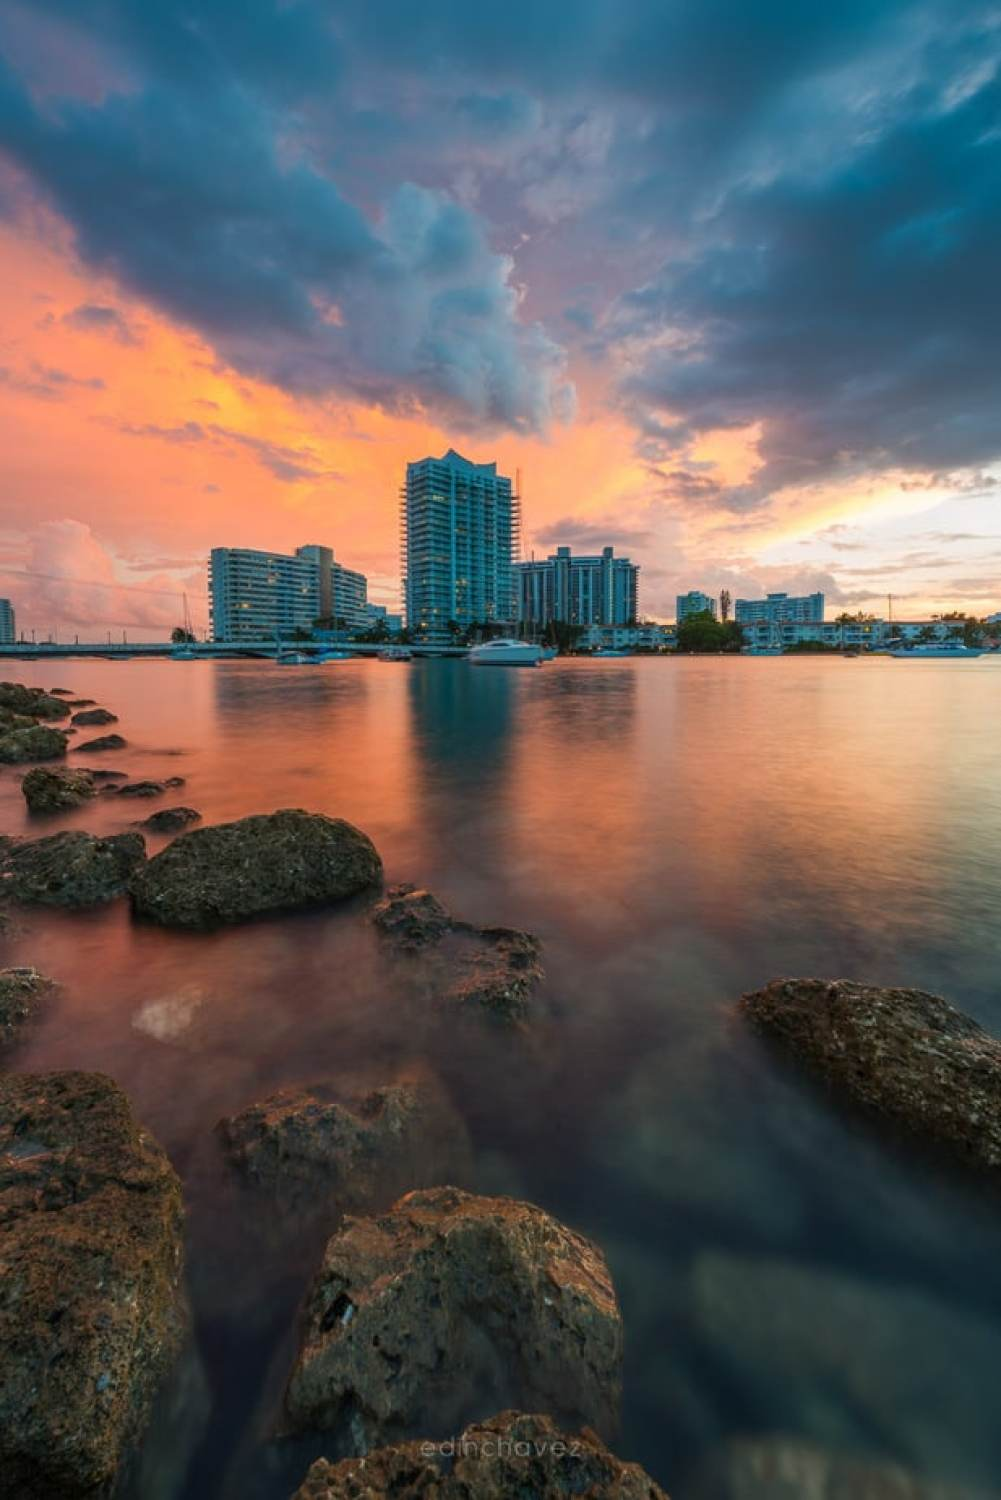 sunset at maurcie gibbs park Best Miami Beach Photography Spots